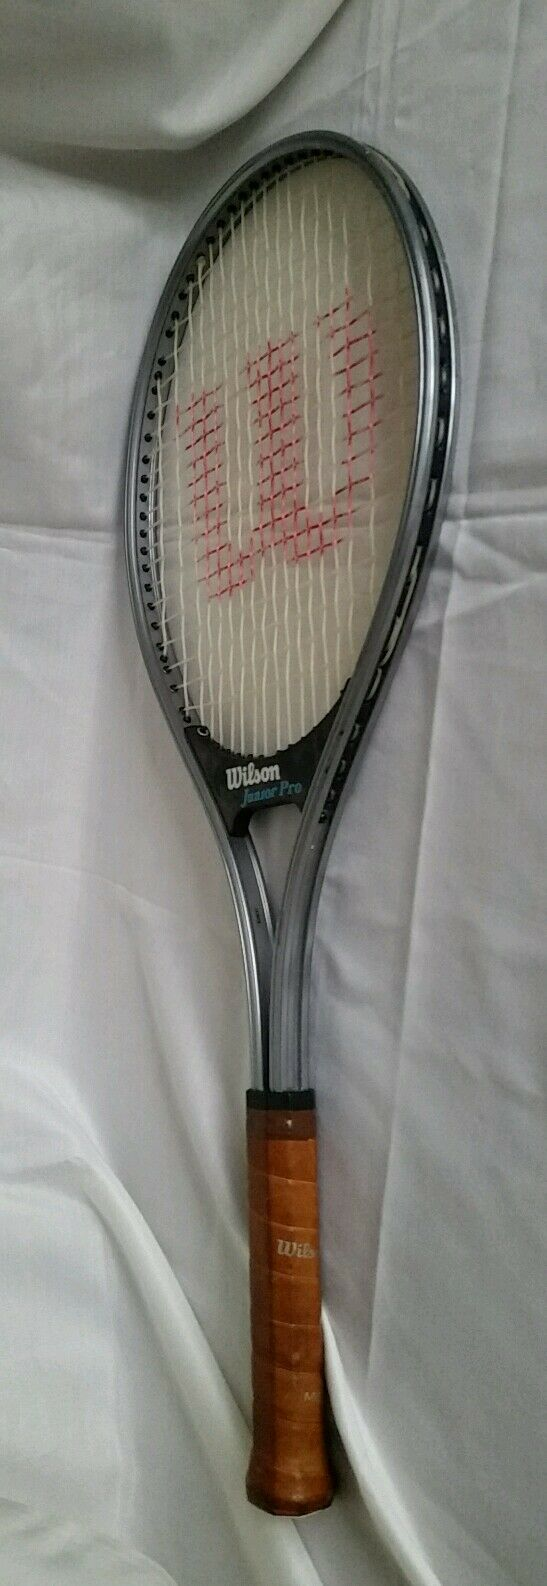 Wilson Tennis Racquet Pro Midsize Junior Metal 25  4 1 2  Grip